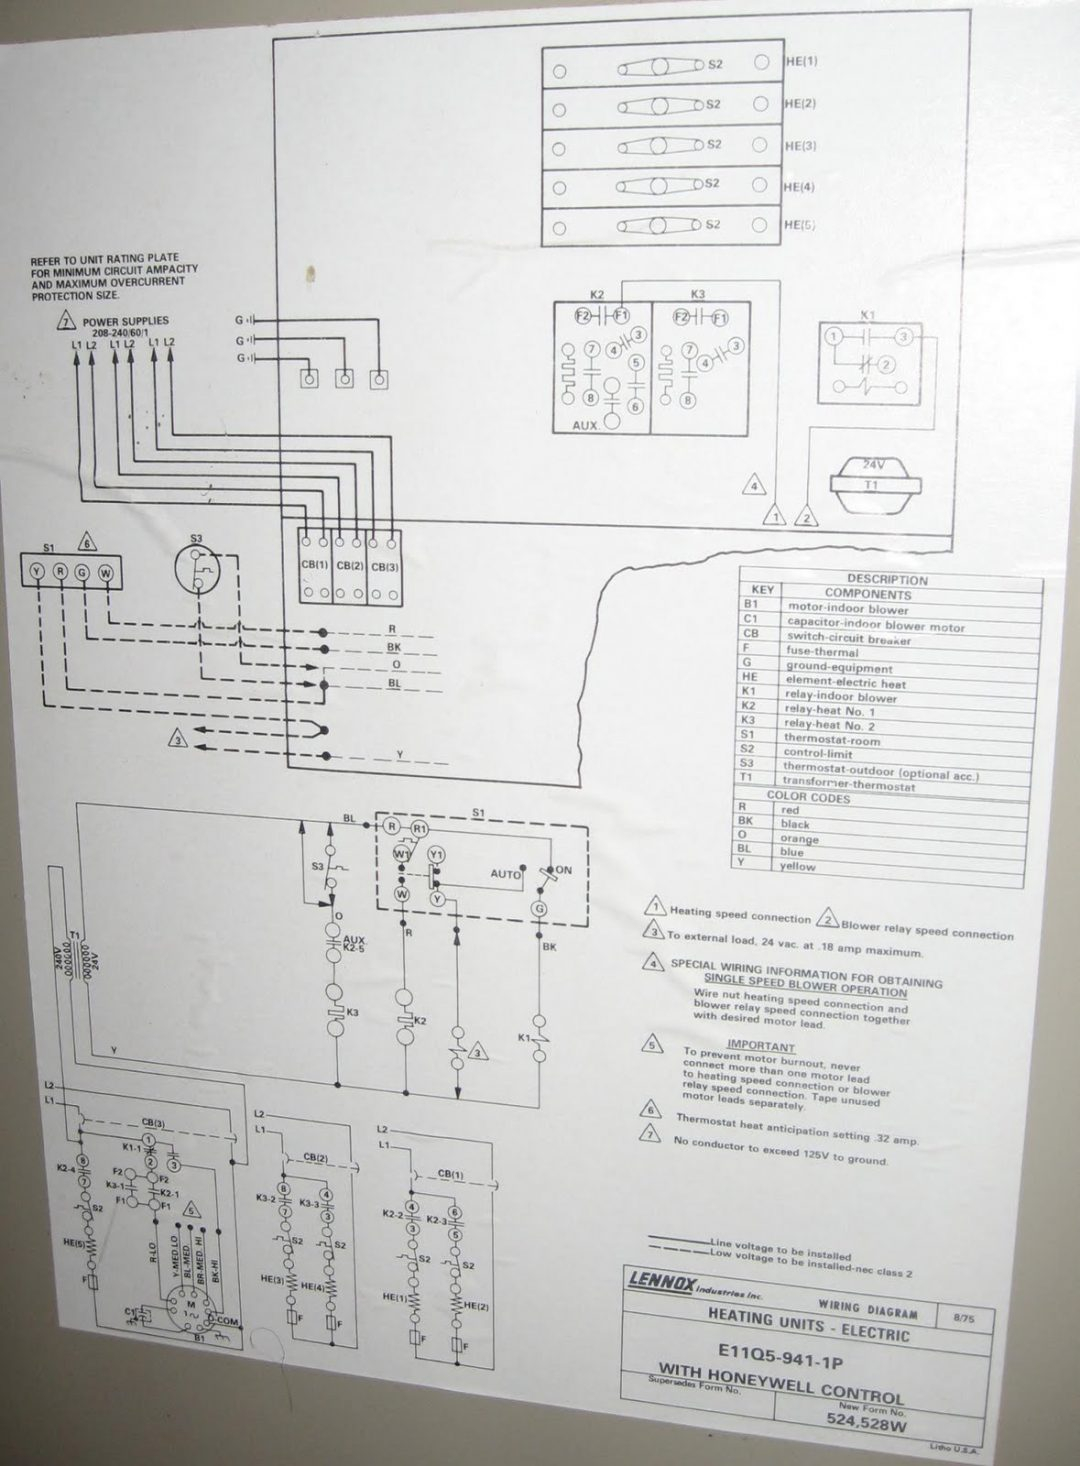 lennox wiring diagram Collection-Ac Unit Wiring Diagram Fresh Lennox Wiring Diagram Air Conditioner Schematic Hvac Package Unit 6-m